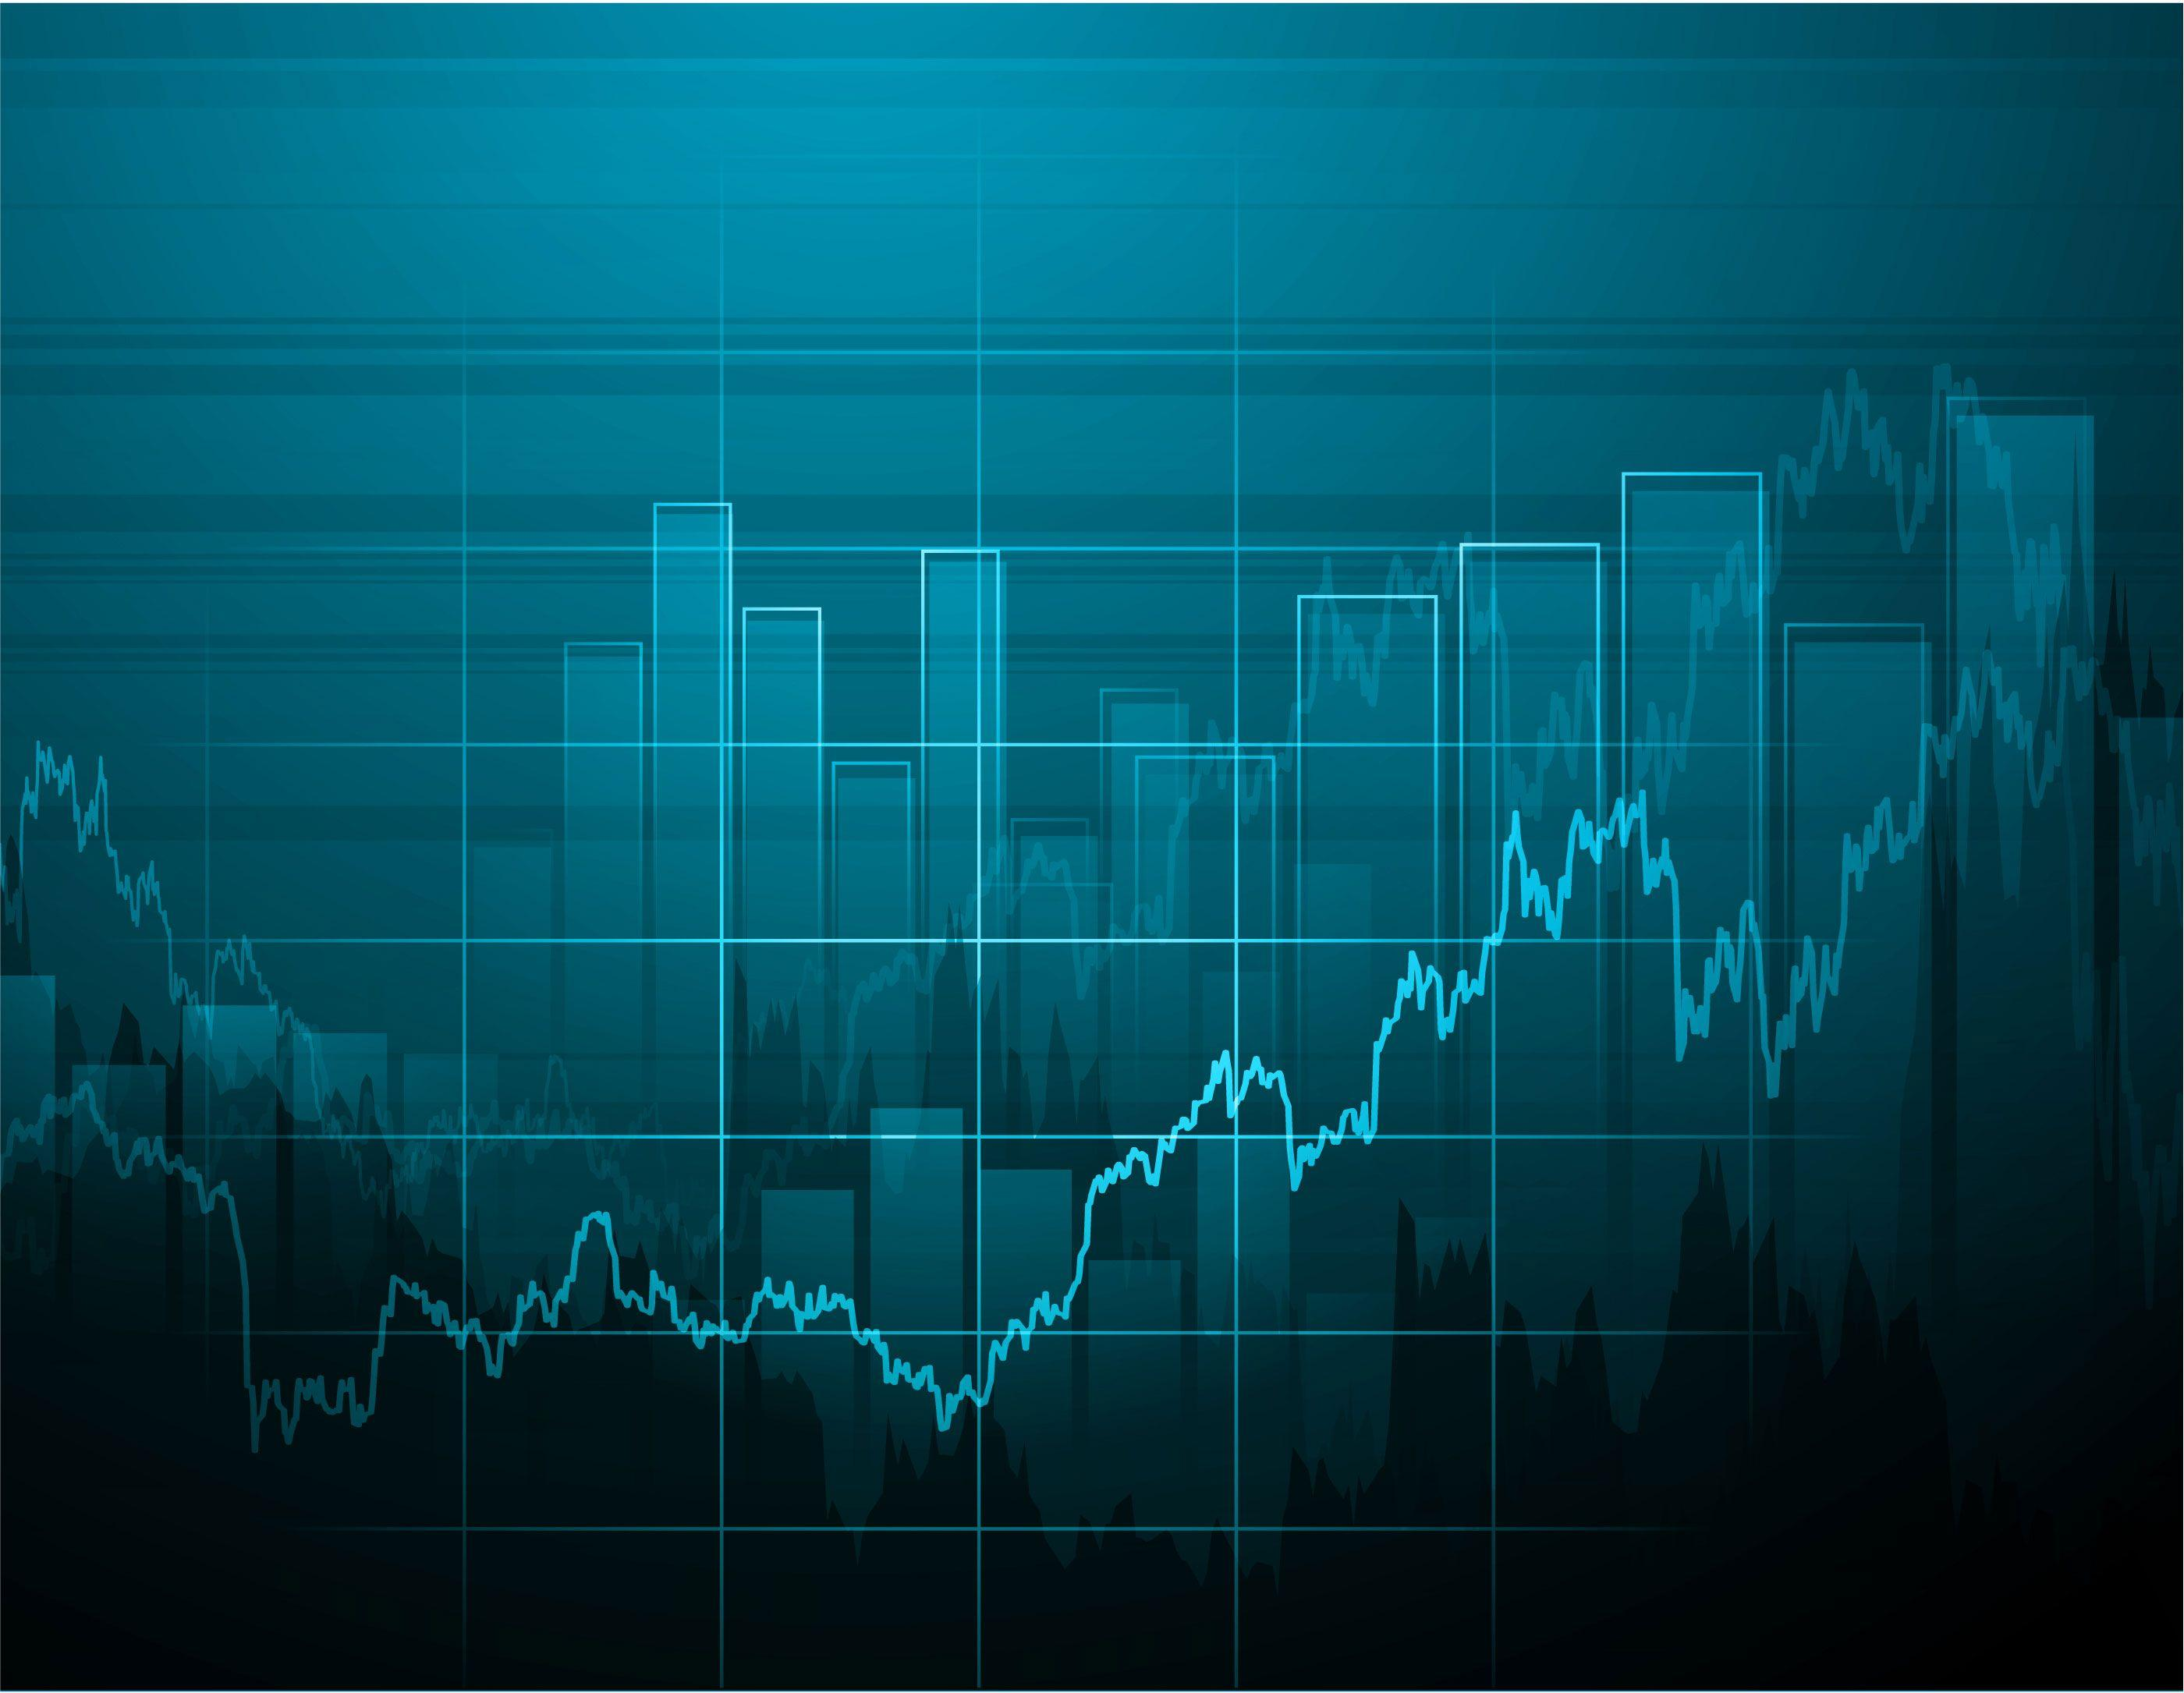 Stock market wallpapers wallpaper cave for Wallpaper stockists